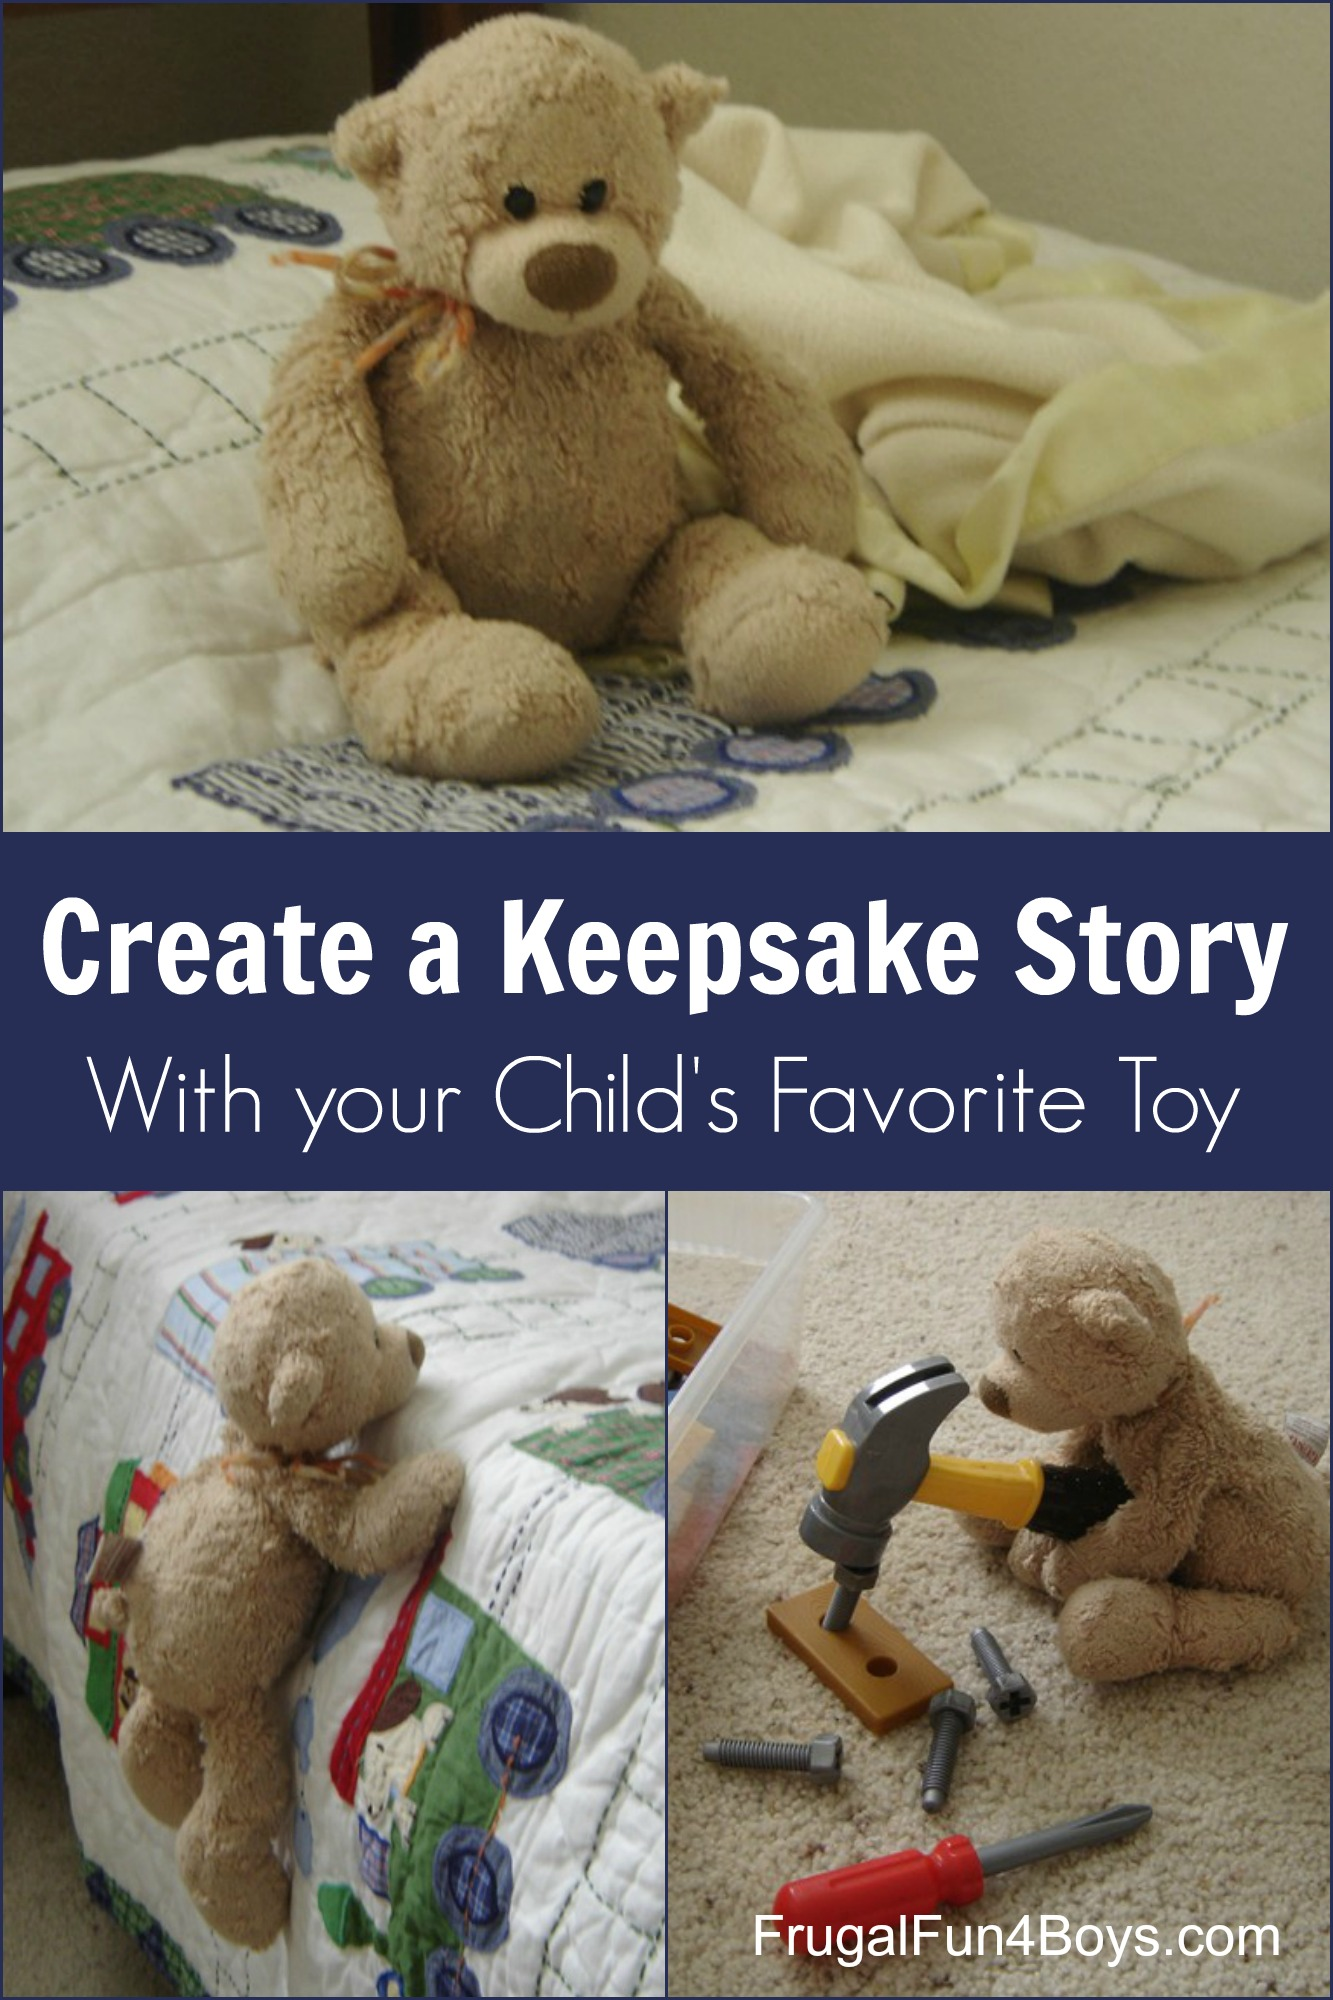 Create a Keepsake Story with Your Child's Favorite Toy